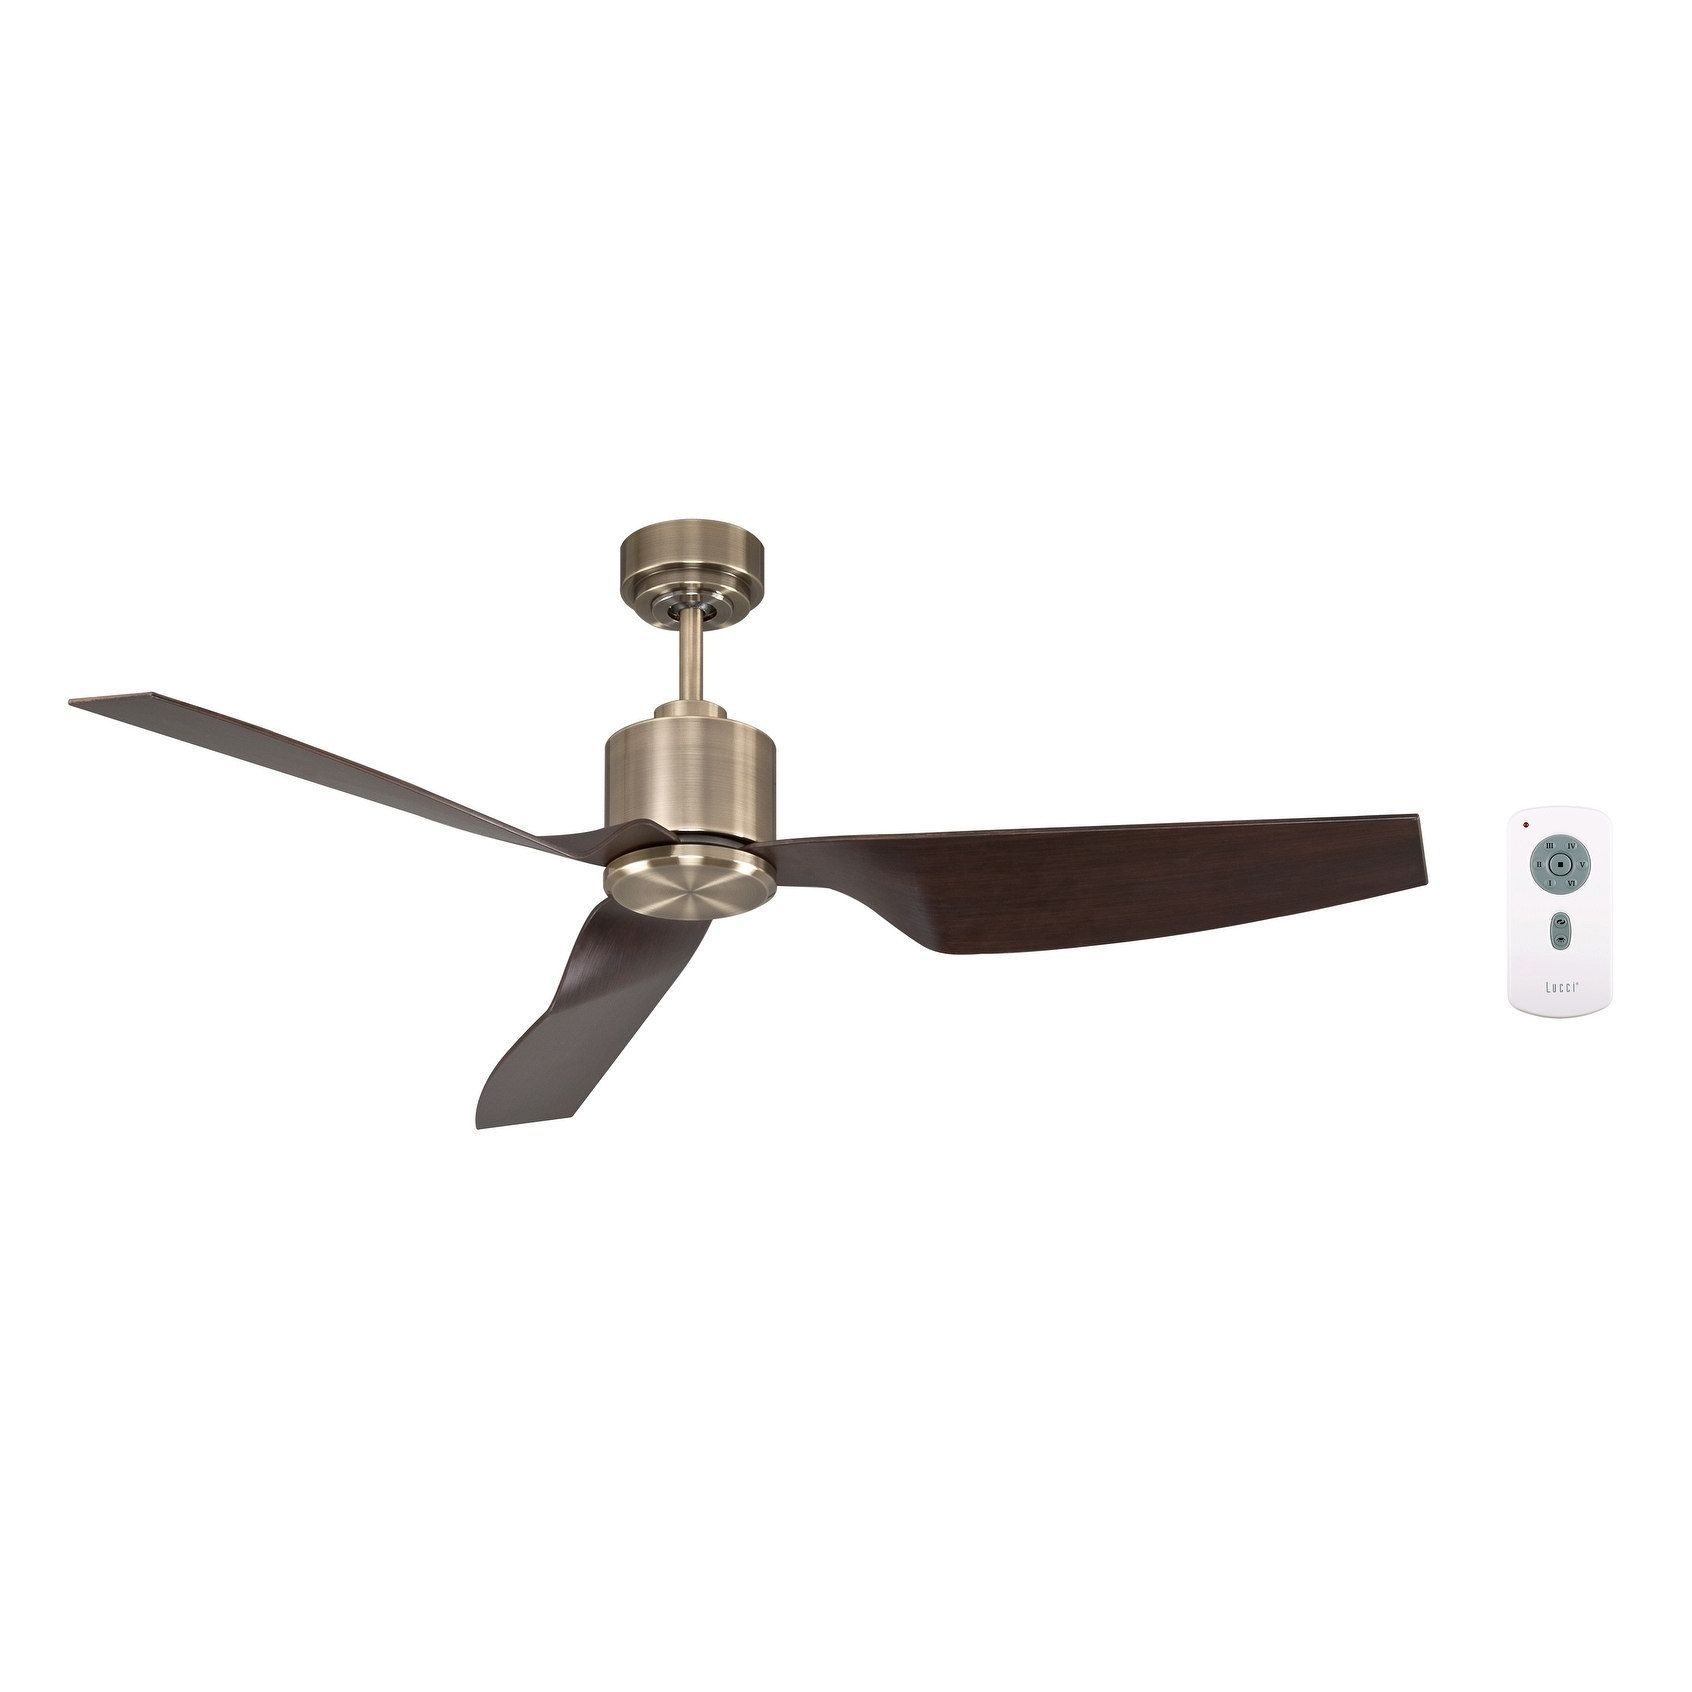 50 In Antique Brass Ceiling Fan with Remote Control Metal